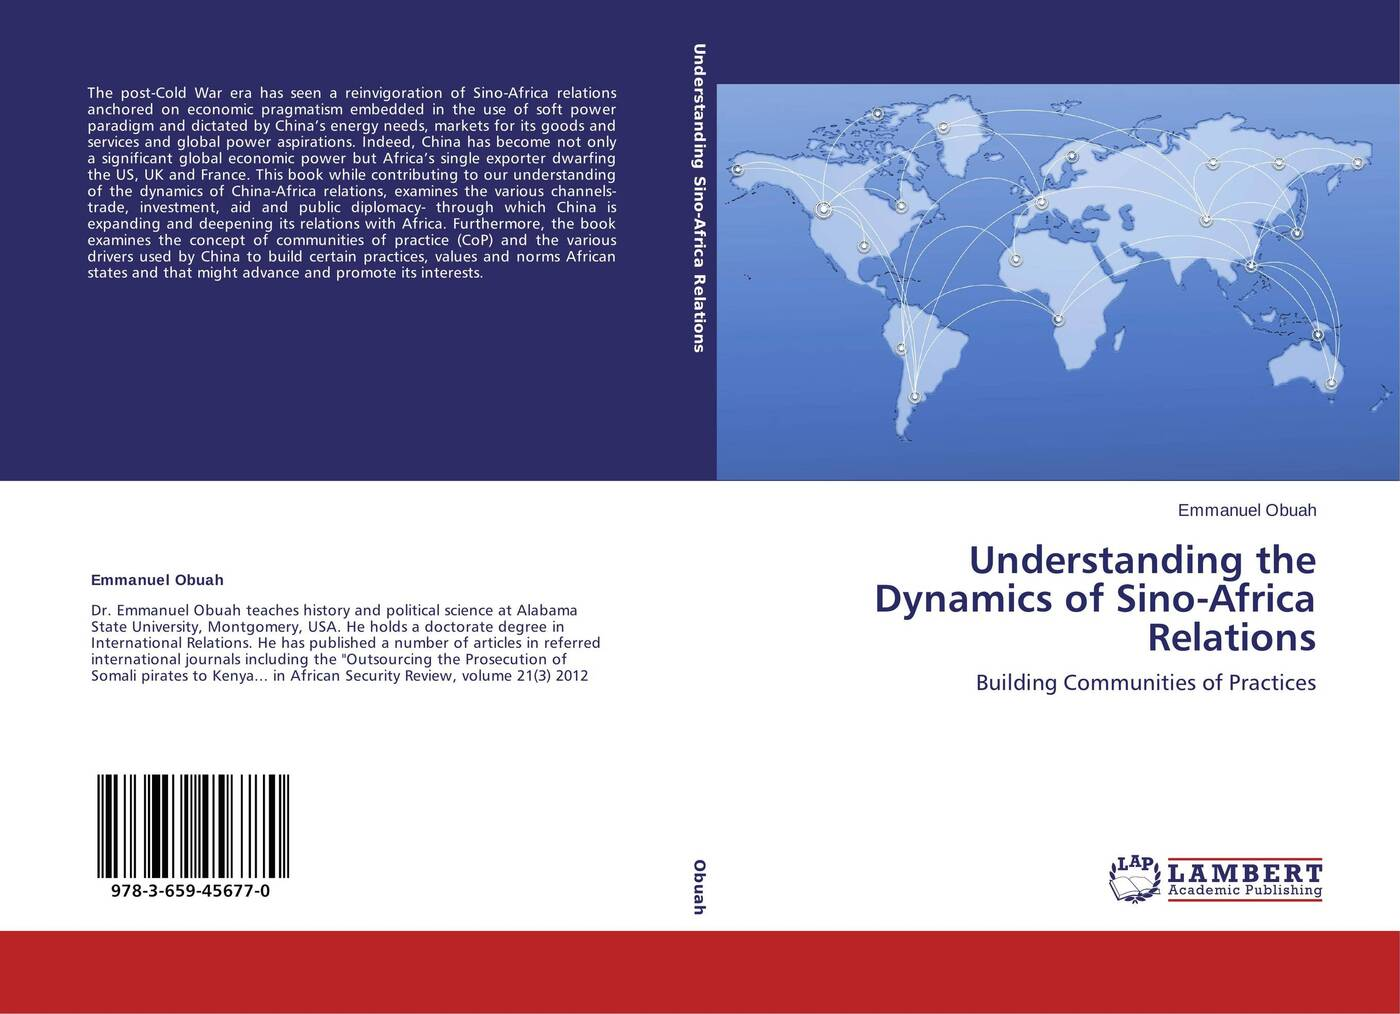 Emmanuel Obuah Understanding the Dynamics of Sino-Africa Relations g anderson e designated drivers how china plans to dominate the global auto industry